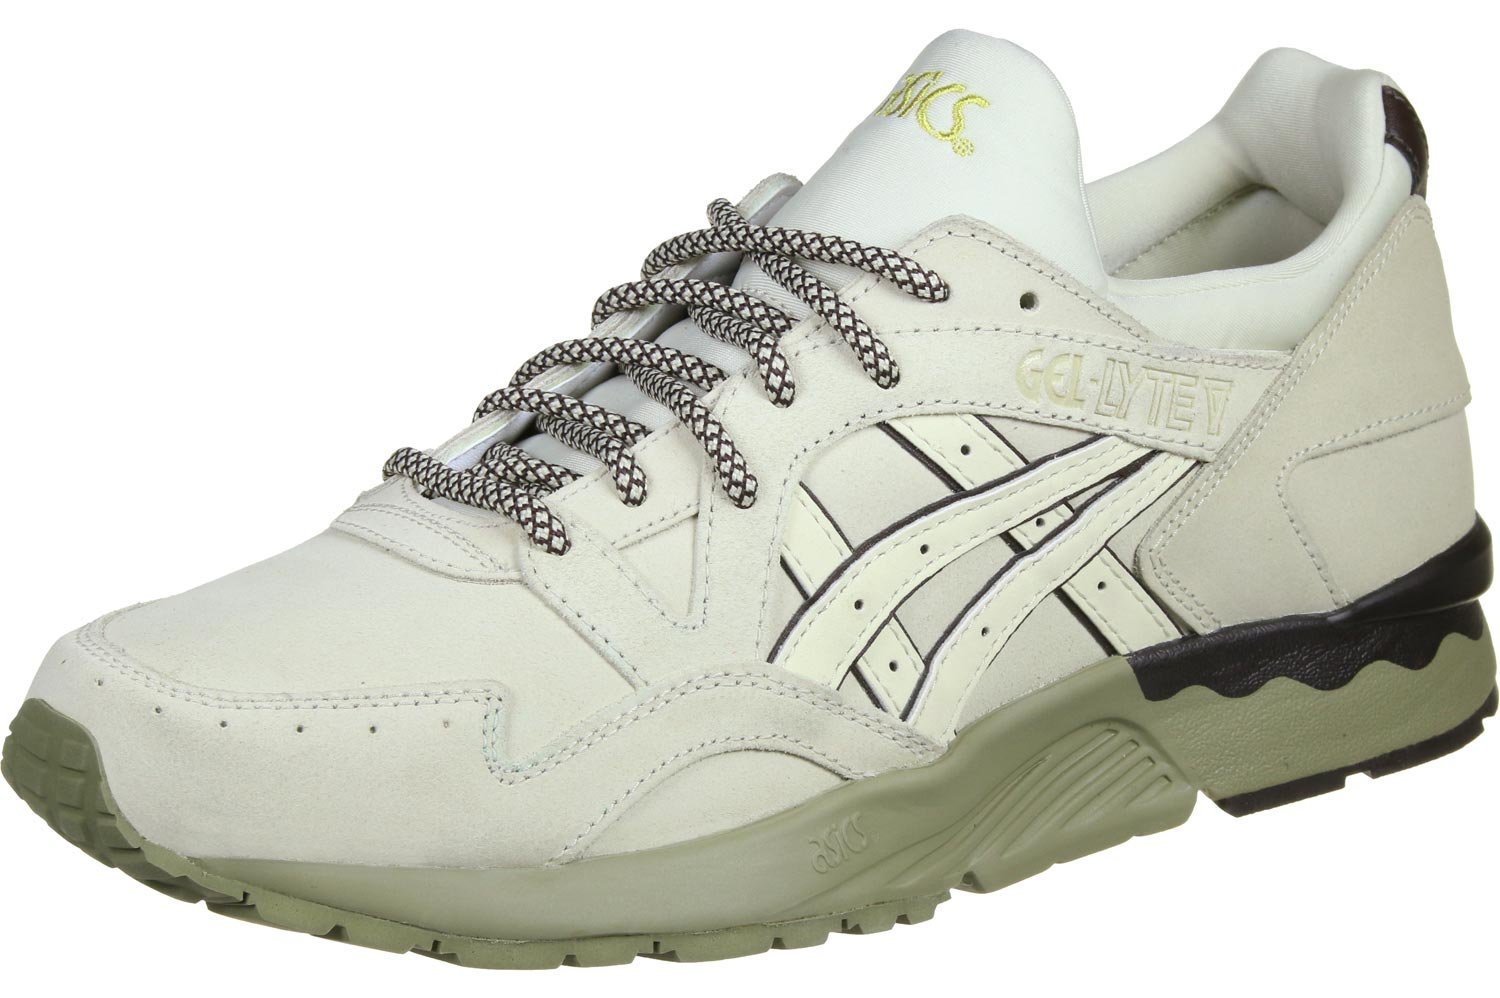 Asics Adulte H6q4l, Beige Chaussures Mixte Adulte Chaussures Beige Olive 347e2aa - piero.space